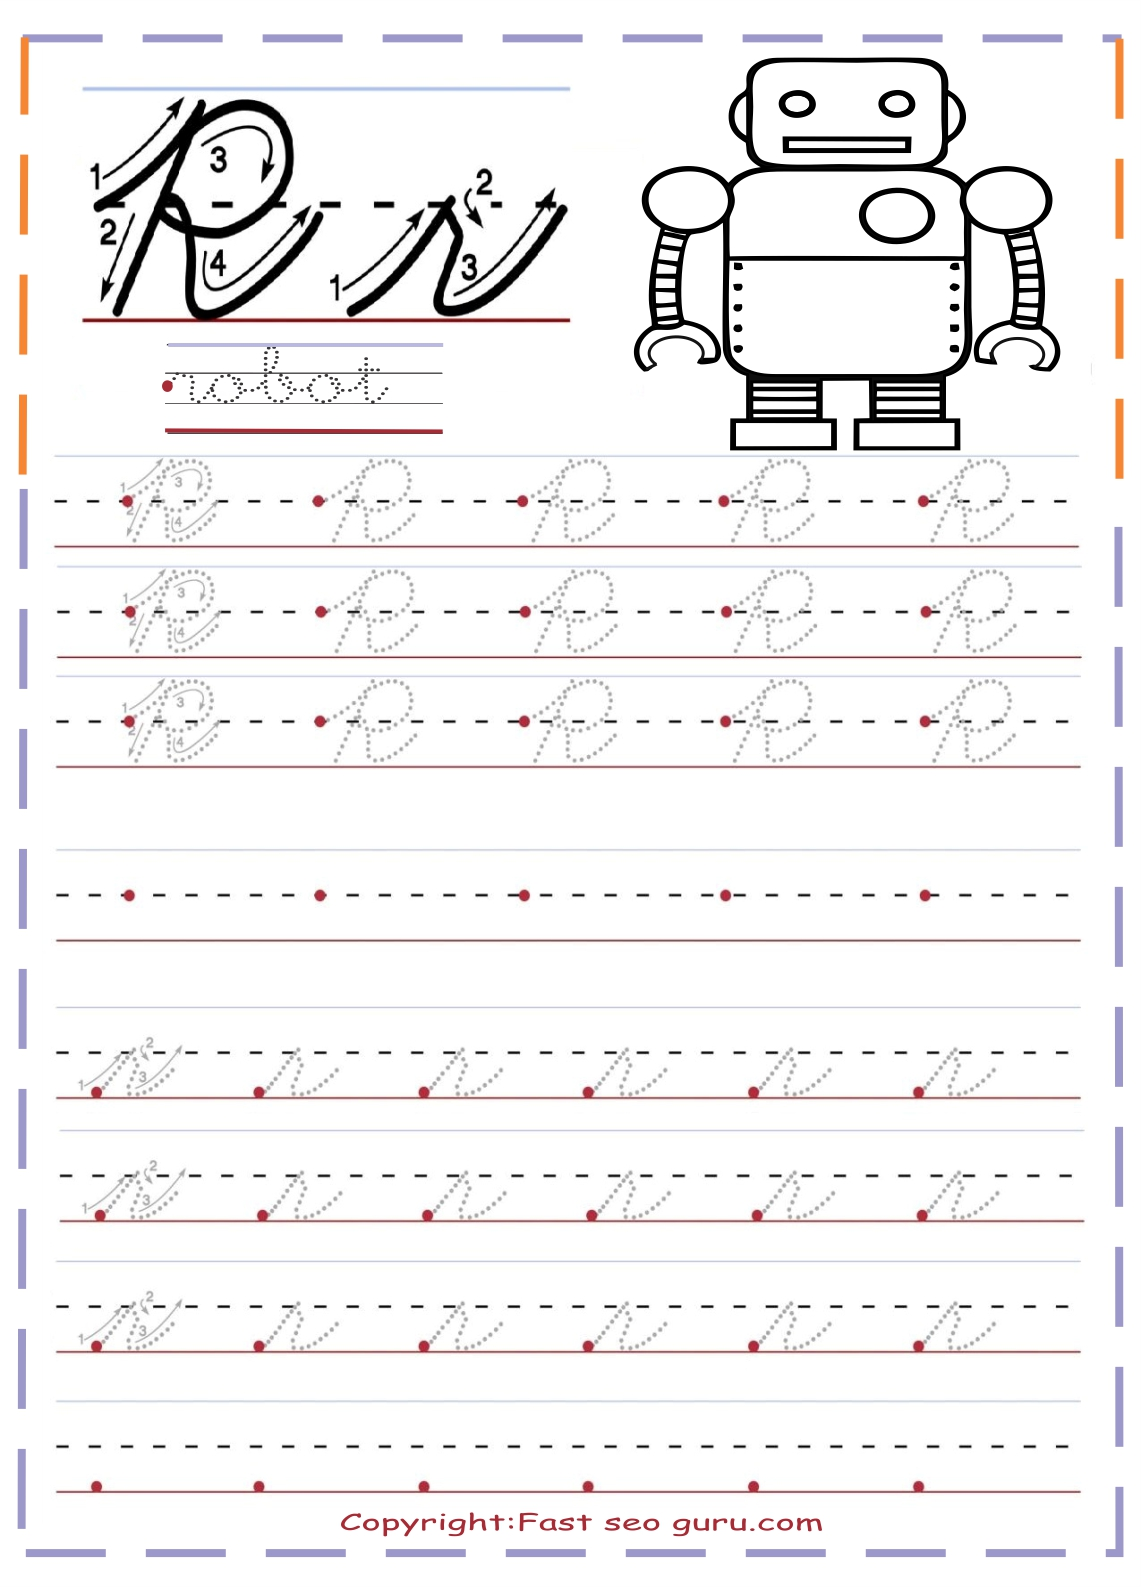 Cursive Handwriting Tracing Worksheets Letter R For Robot